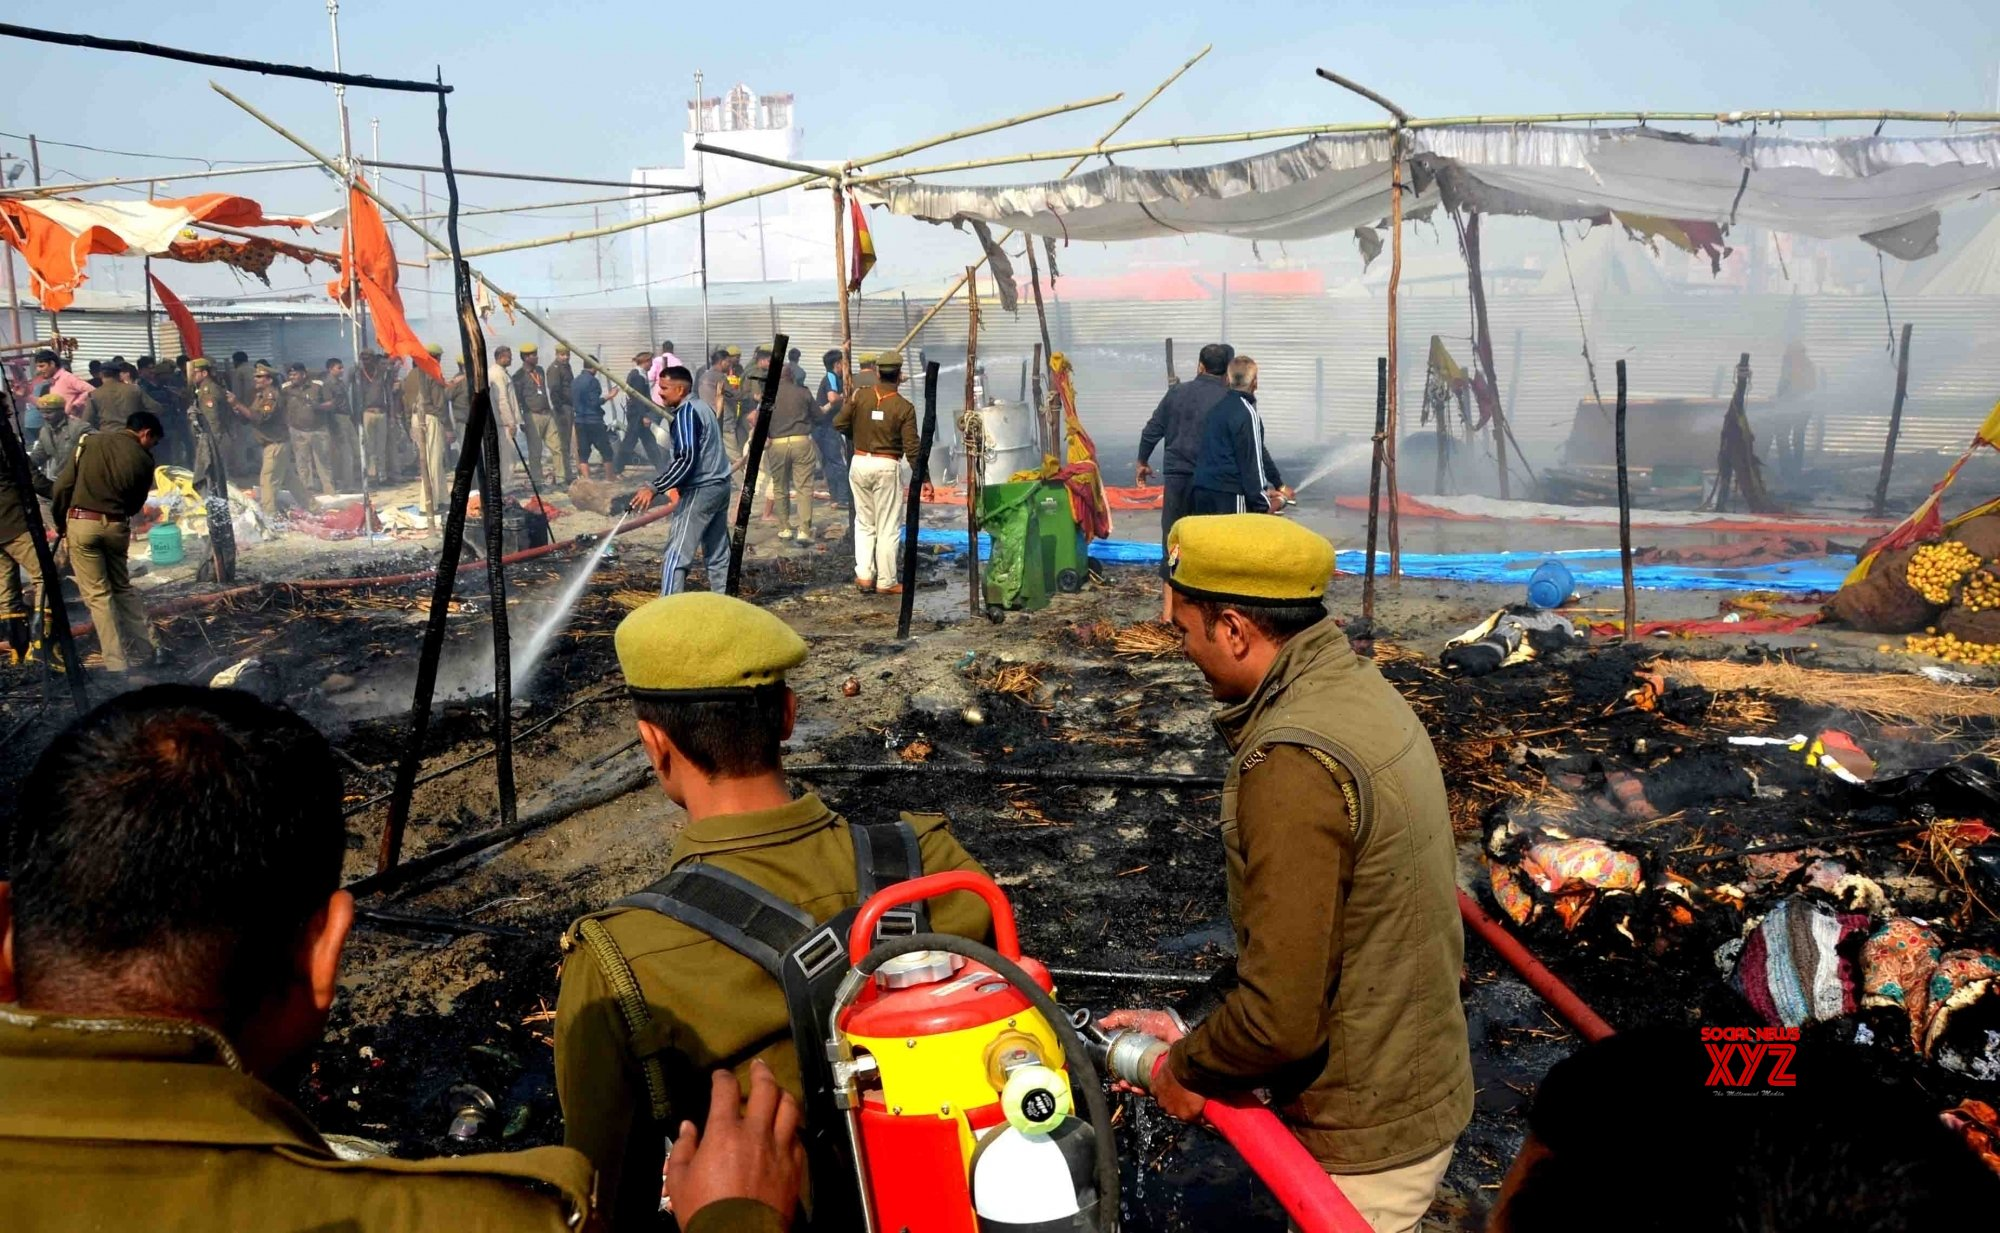 Prayagraj: Cylinder blast sparks fire at Kumbh Mela #Gallery